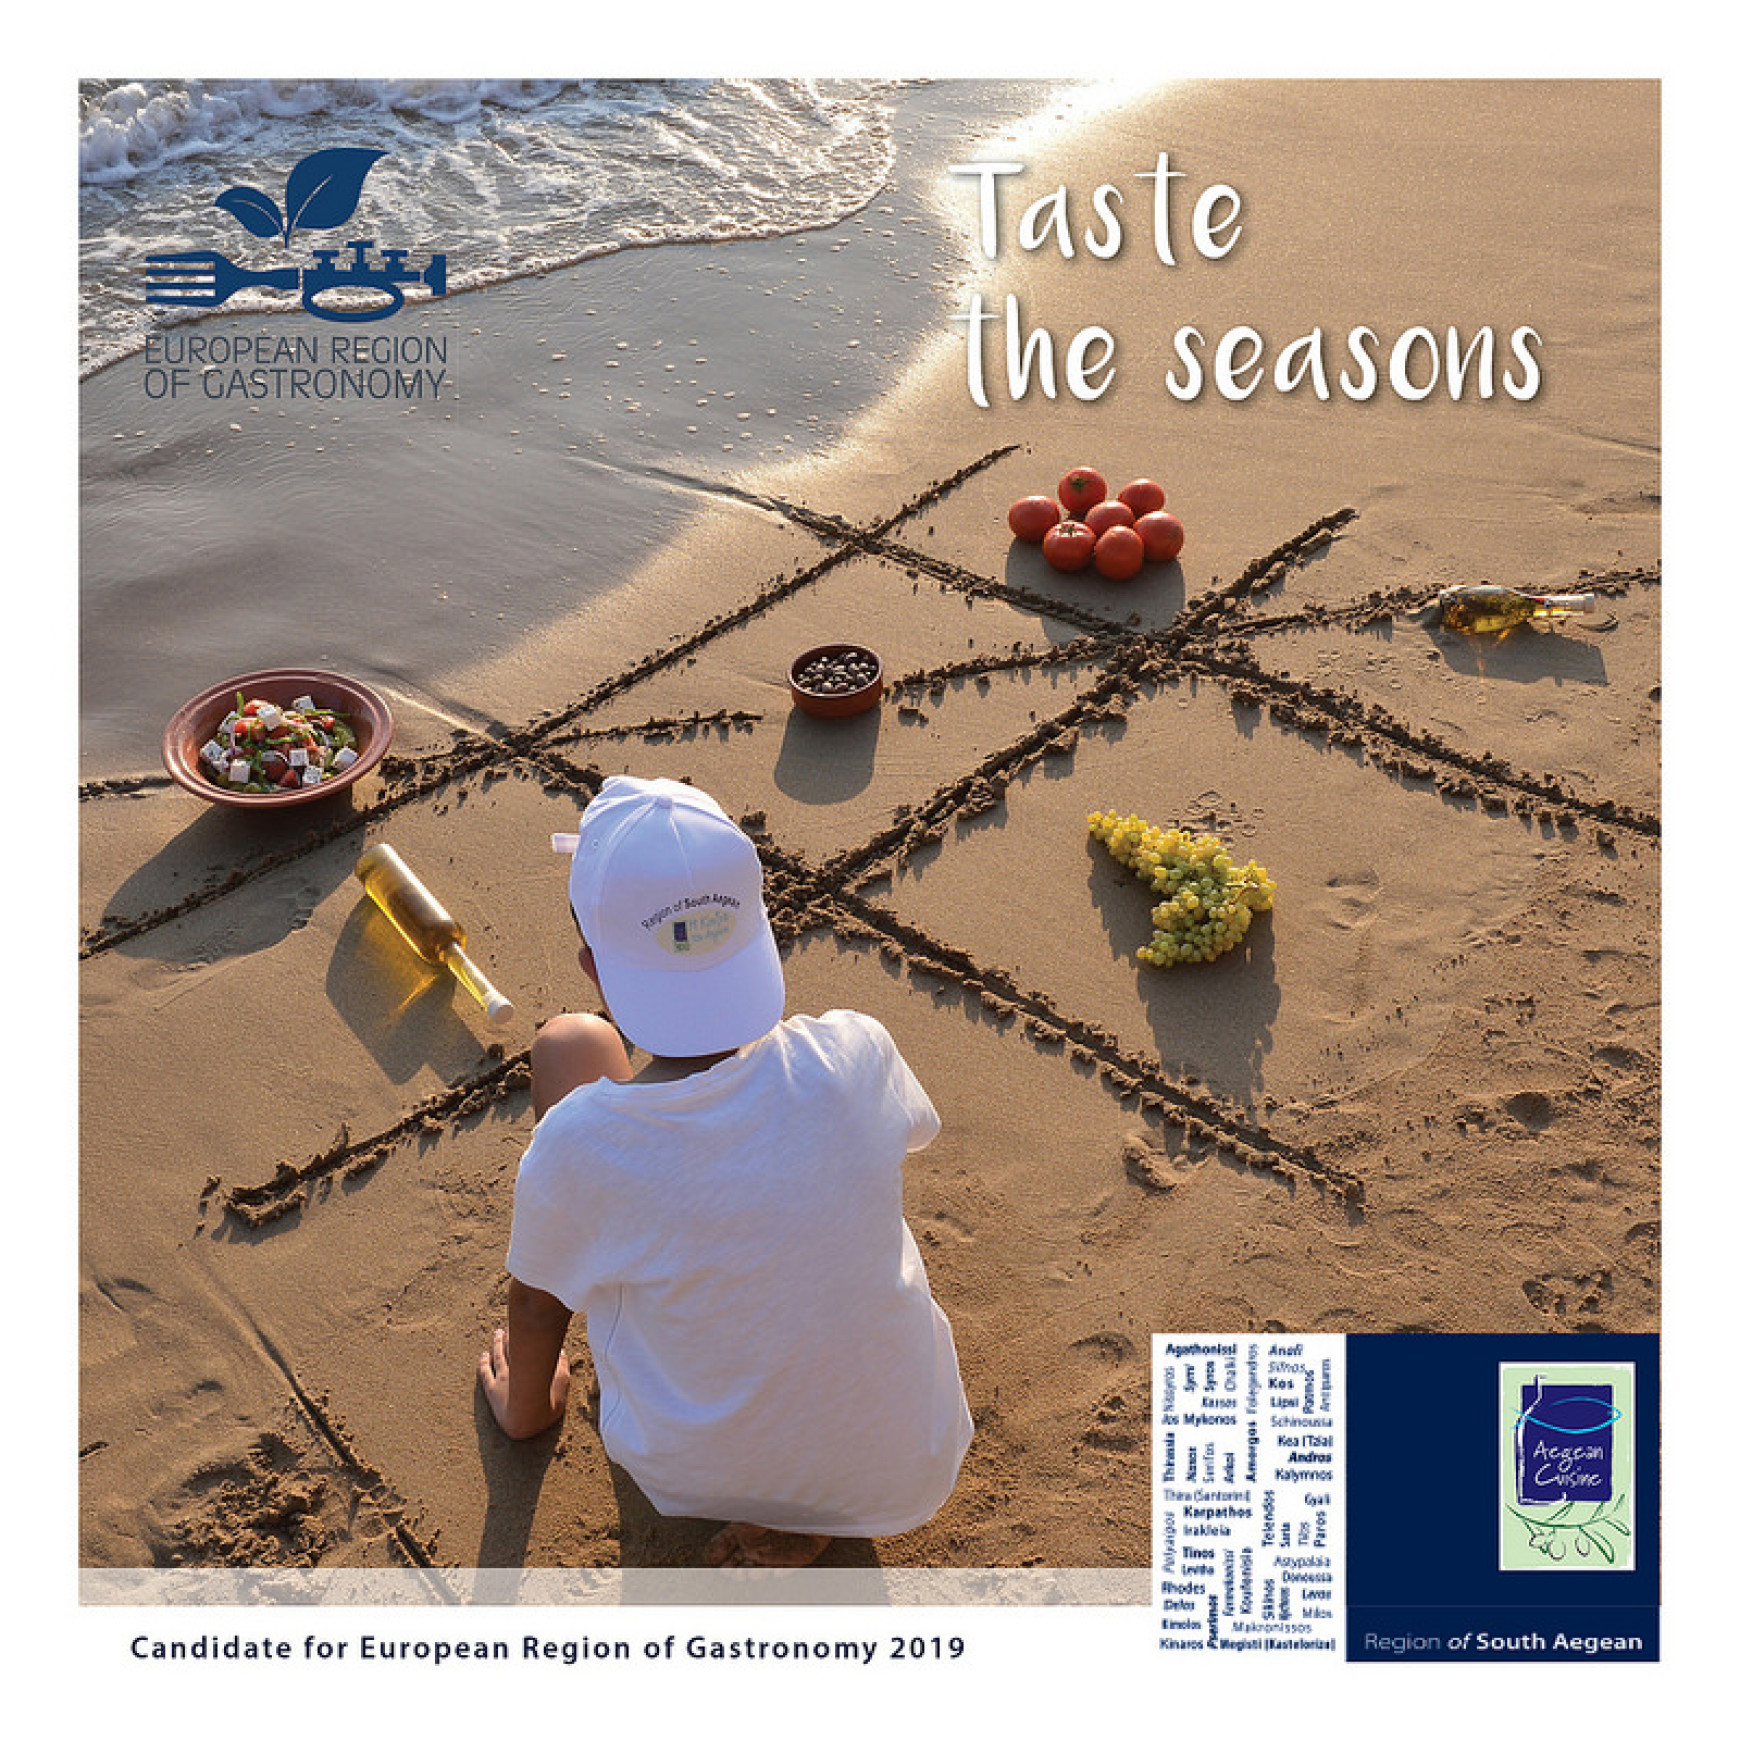 South Aegean's European Region of Gastronomy bid for 2019 submitted